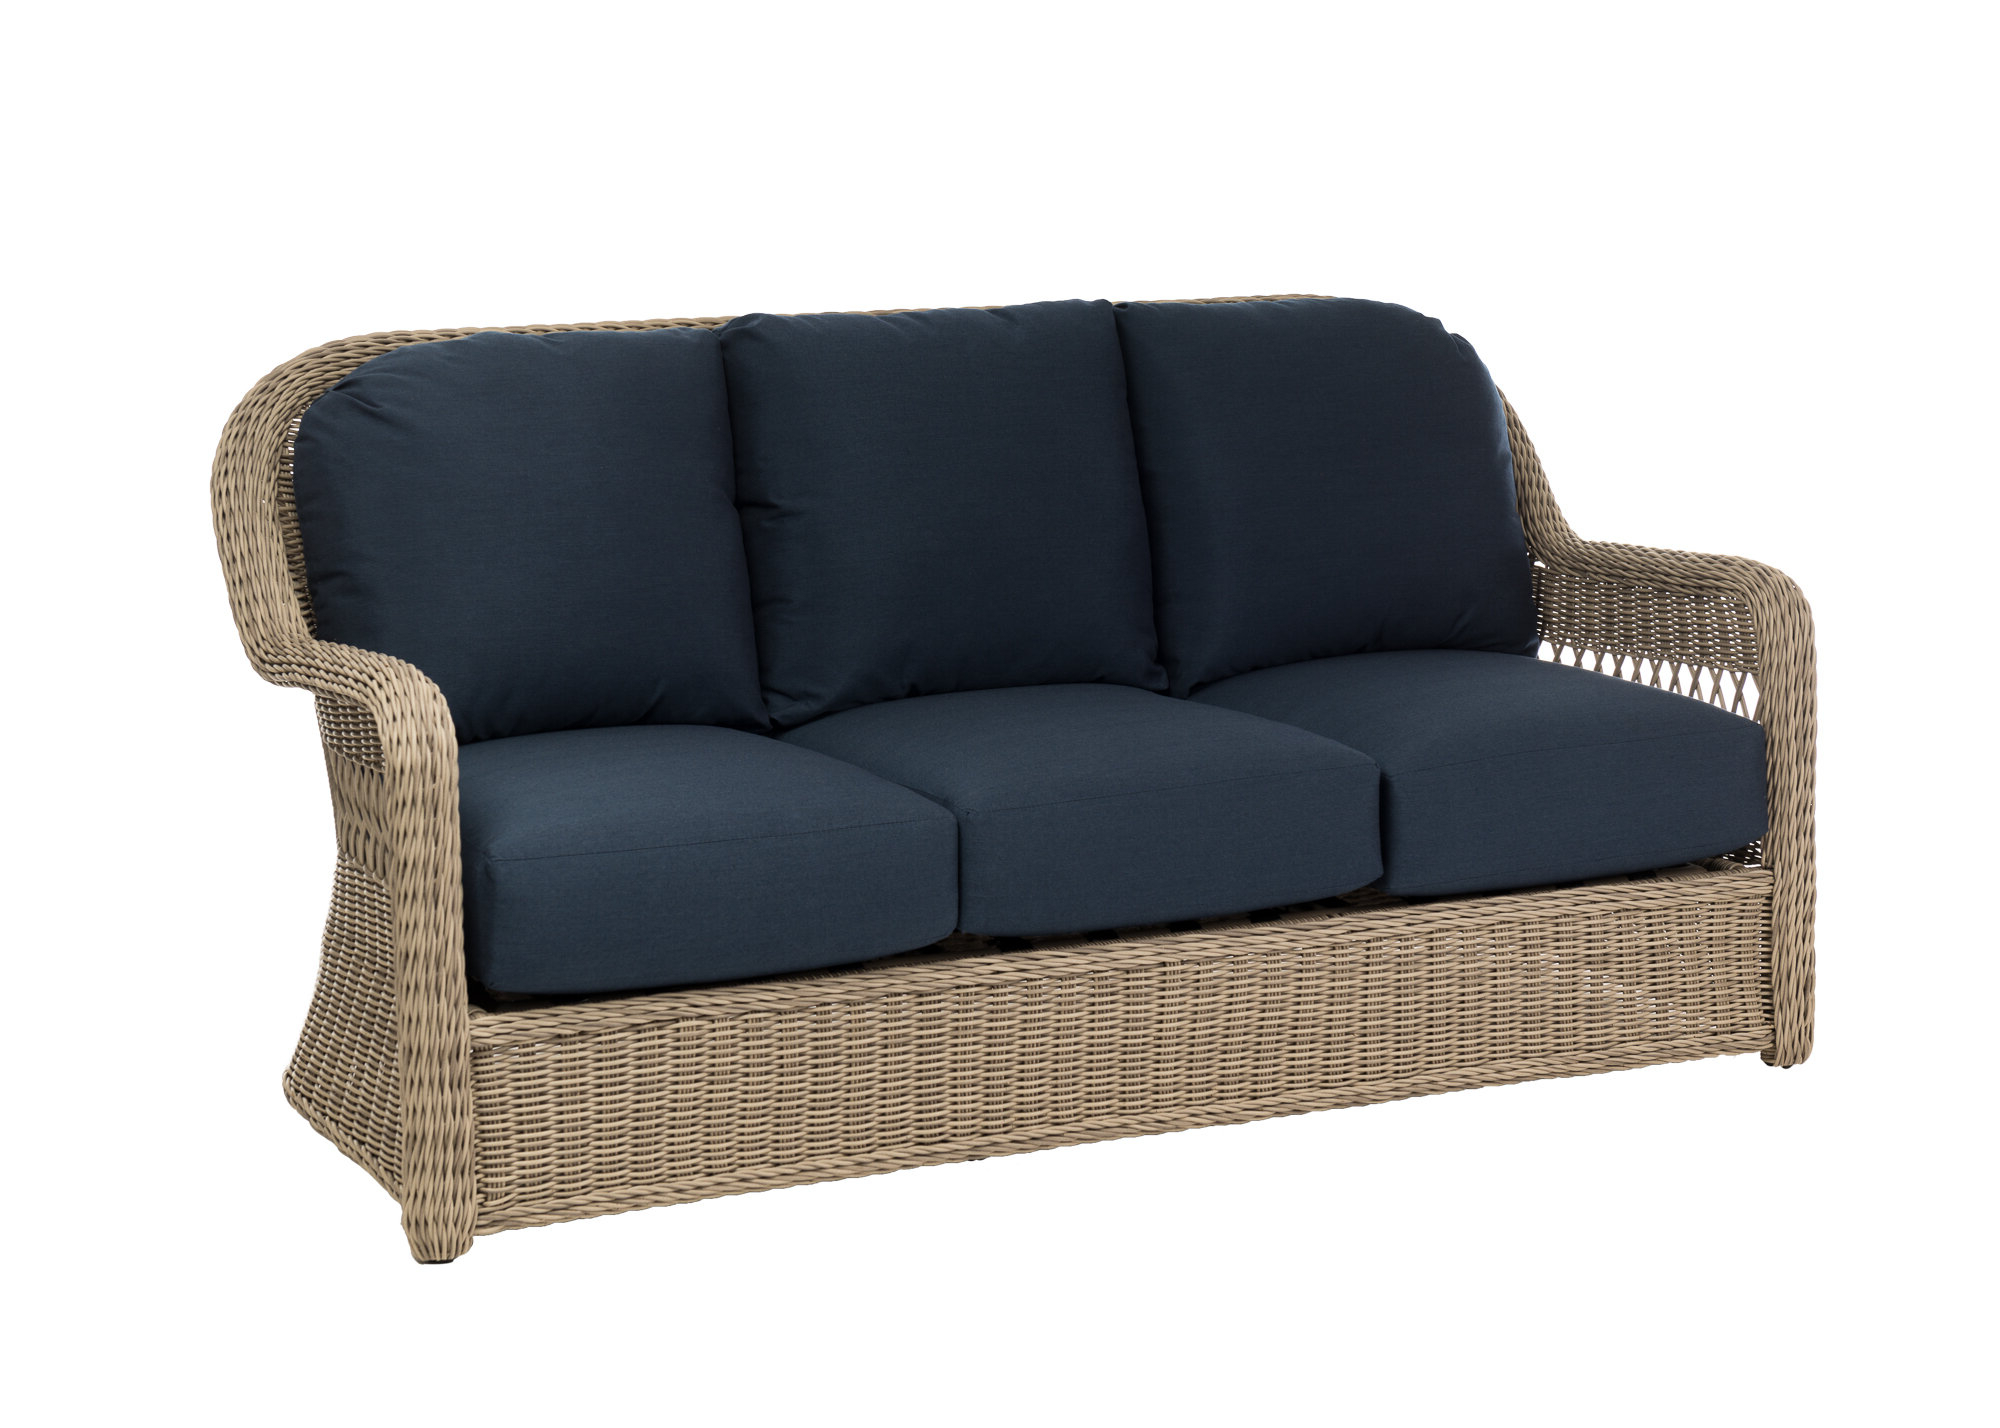 Most Popular Washtenaw Patio Sofa With Cushions Inside Astrid Wicker Patio Sofas With Cushions (View 18 of 25)